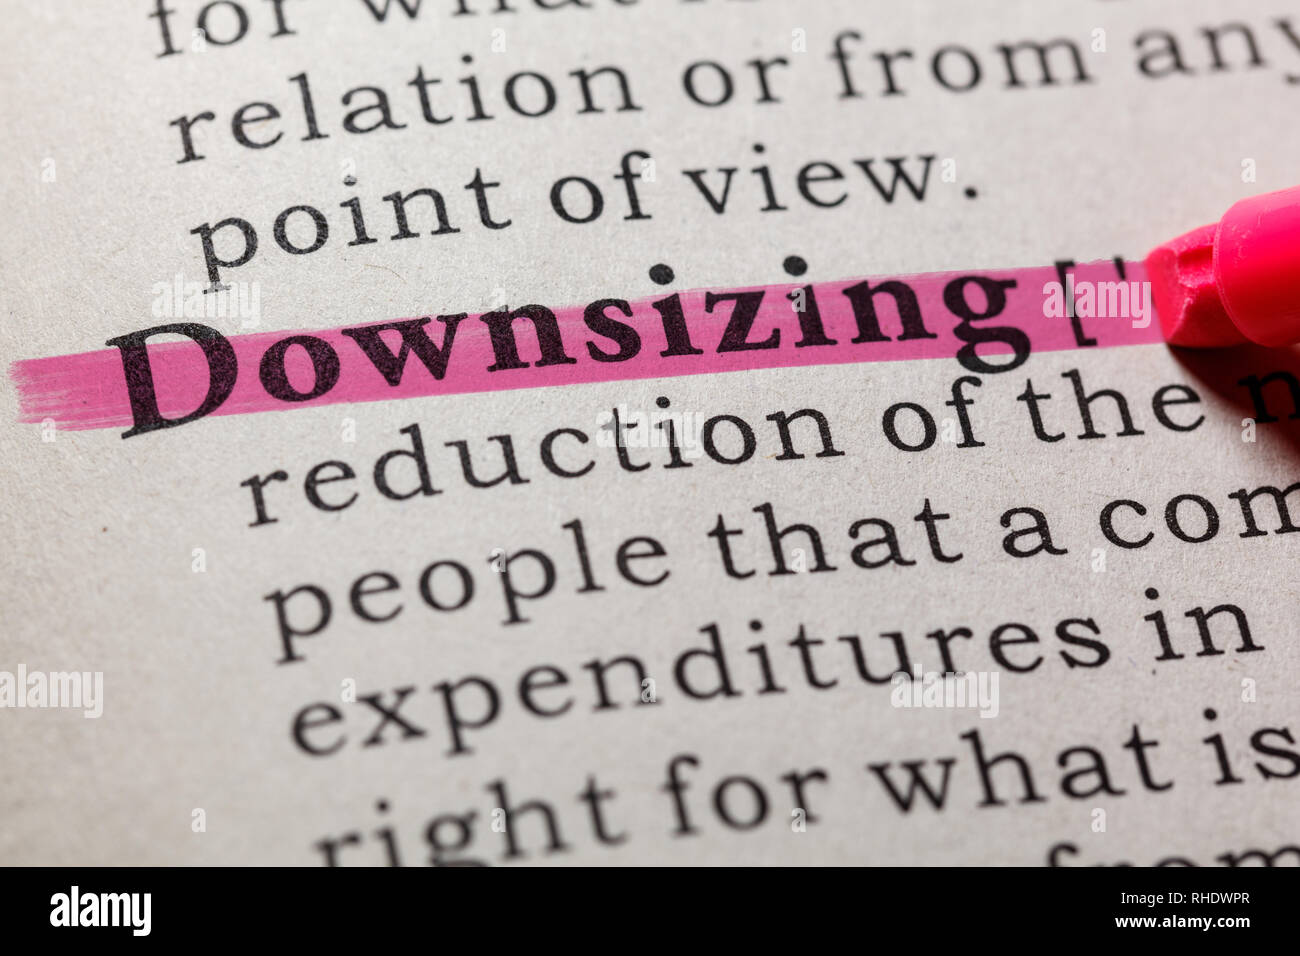 Fake Dictionary, Dictionary definition of the word downsizing. including key descriptive words. - Stock Image